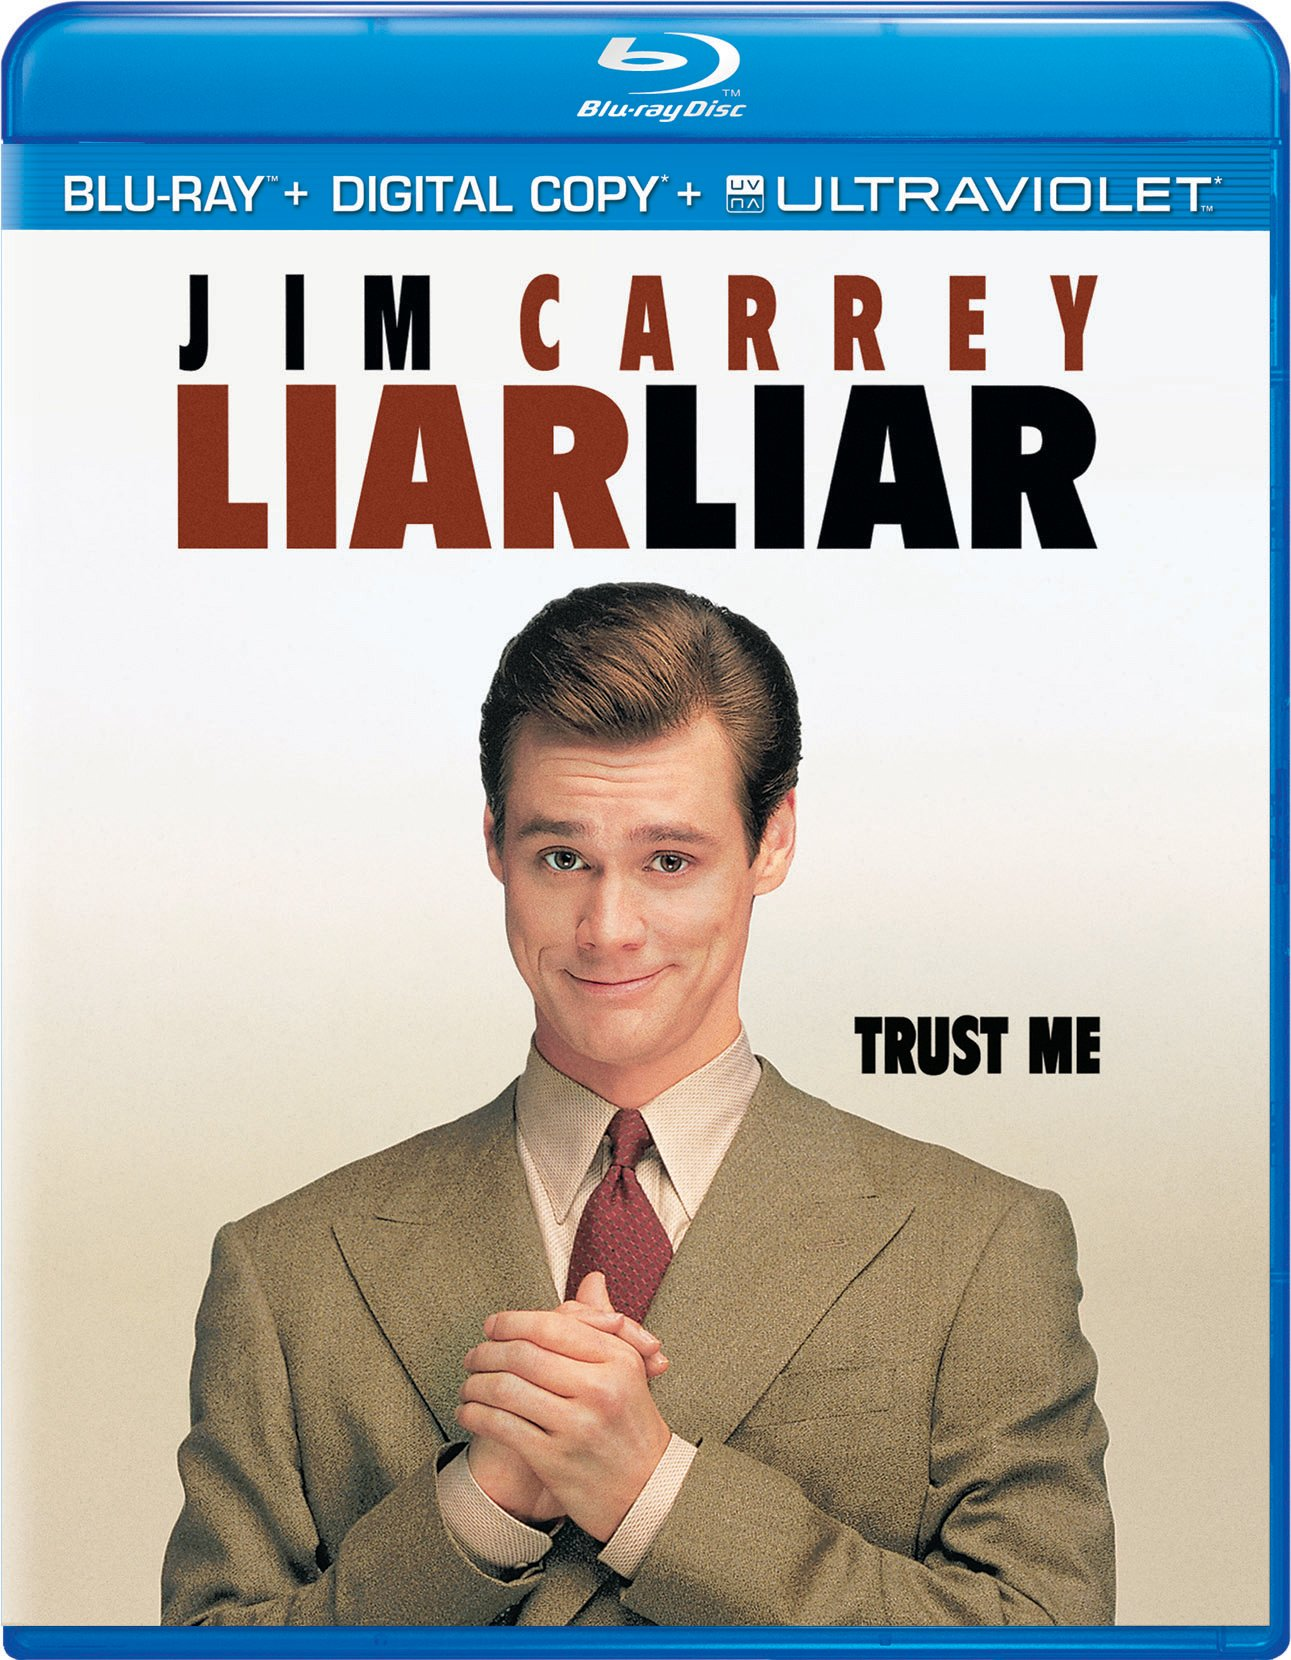 Blu-ray : Liar Liar (Ultraviolet Digital Copy, Snap Case, Slipsleeve Packaging, Digital Copy)